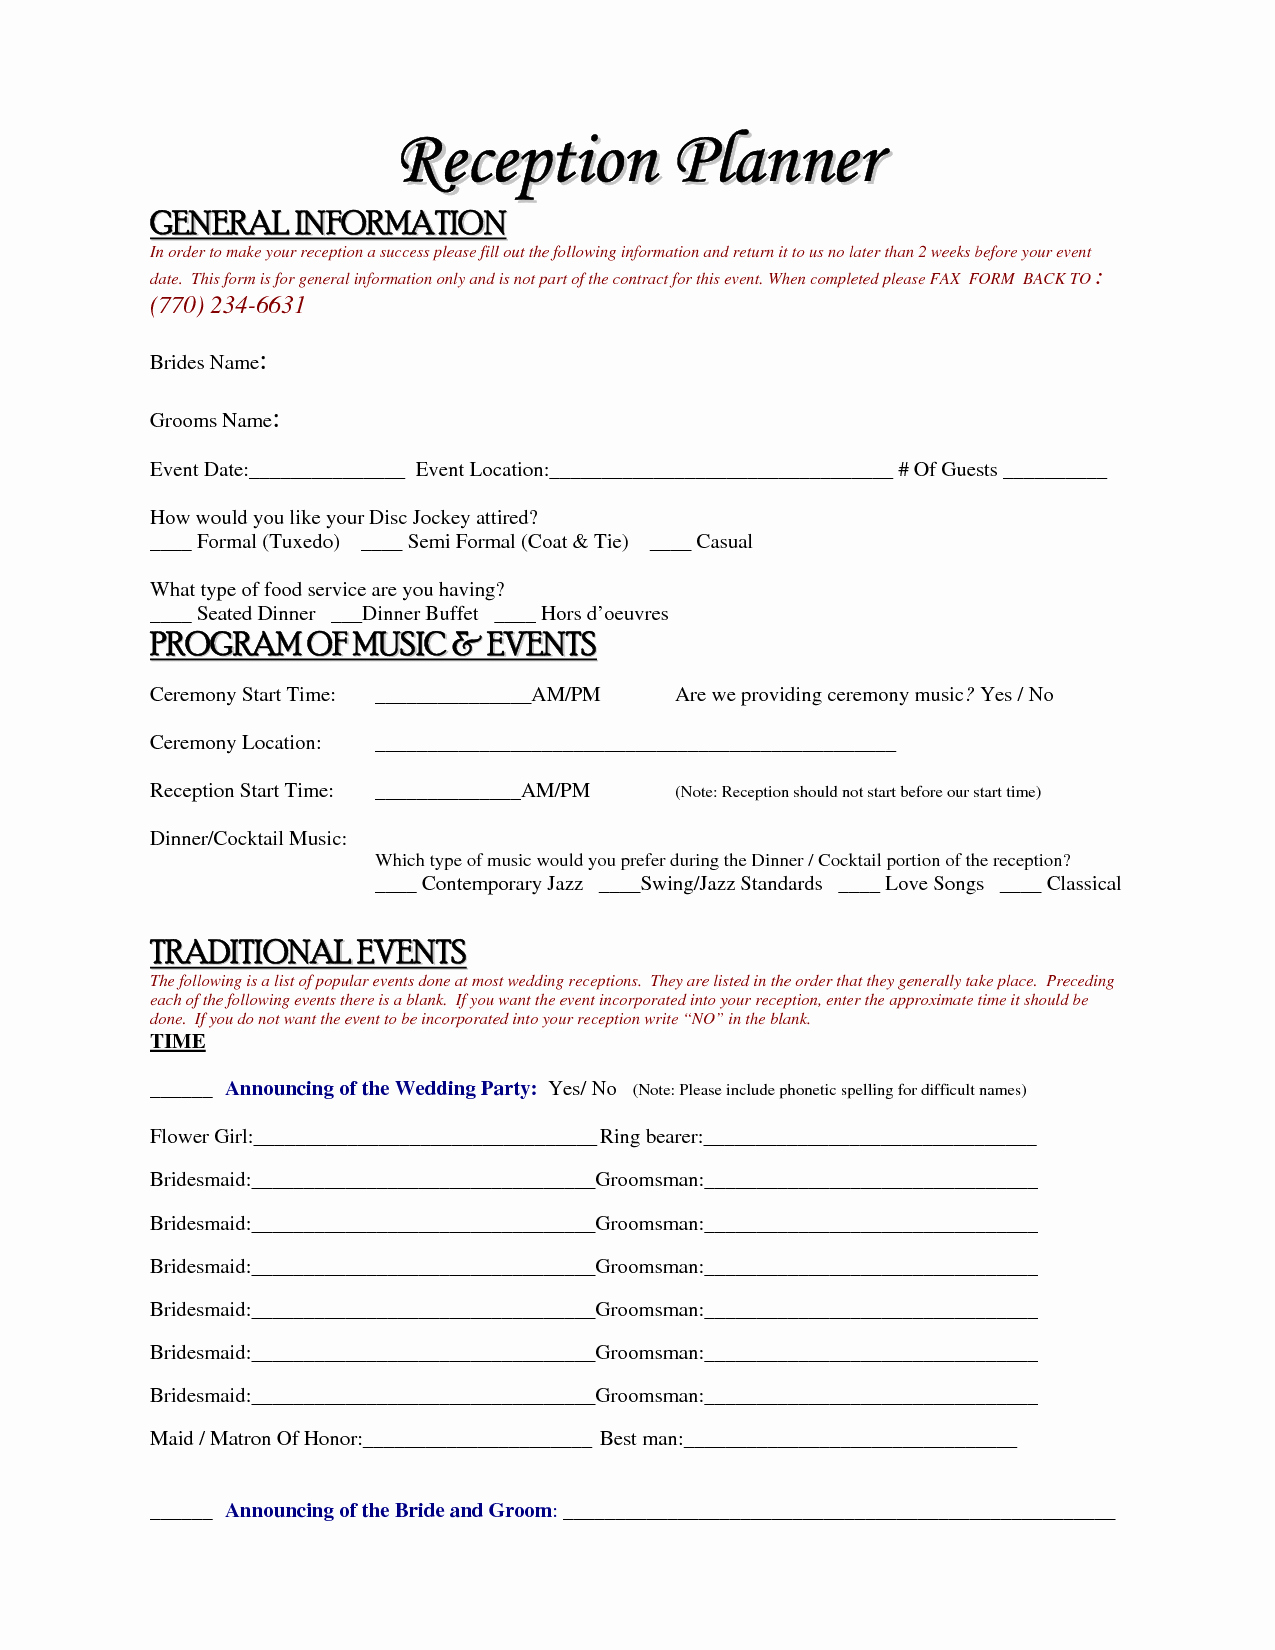 Wedding Planner Contract Template Lovely 6 Best Of Wedding Reception Planner Printables